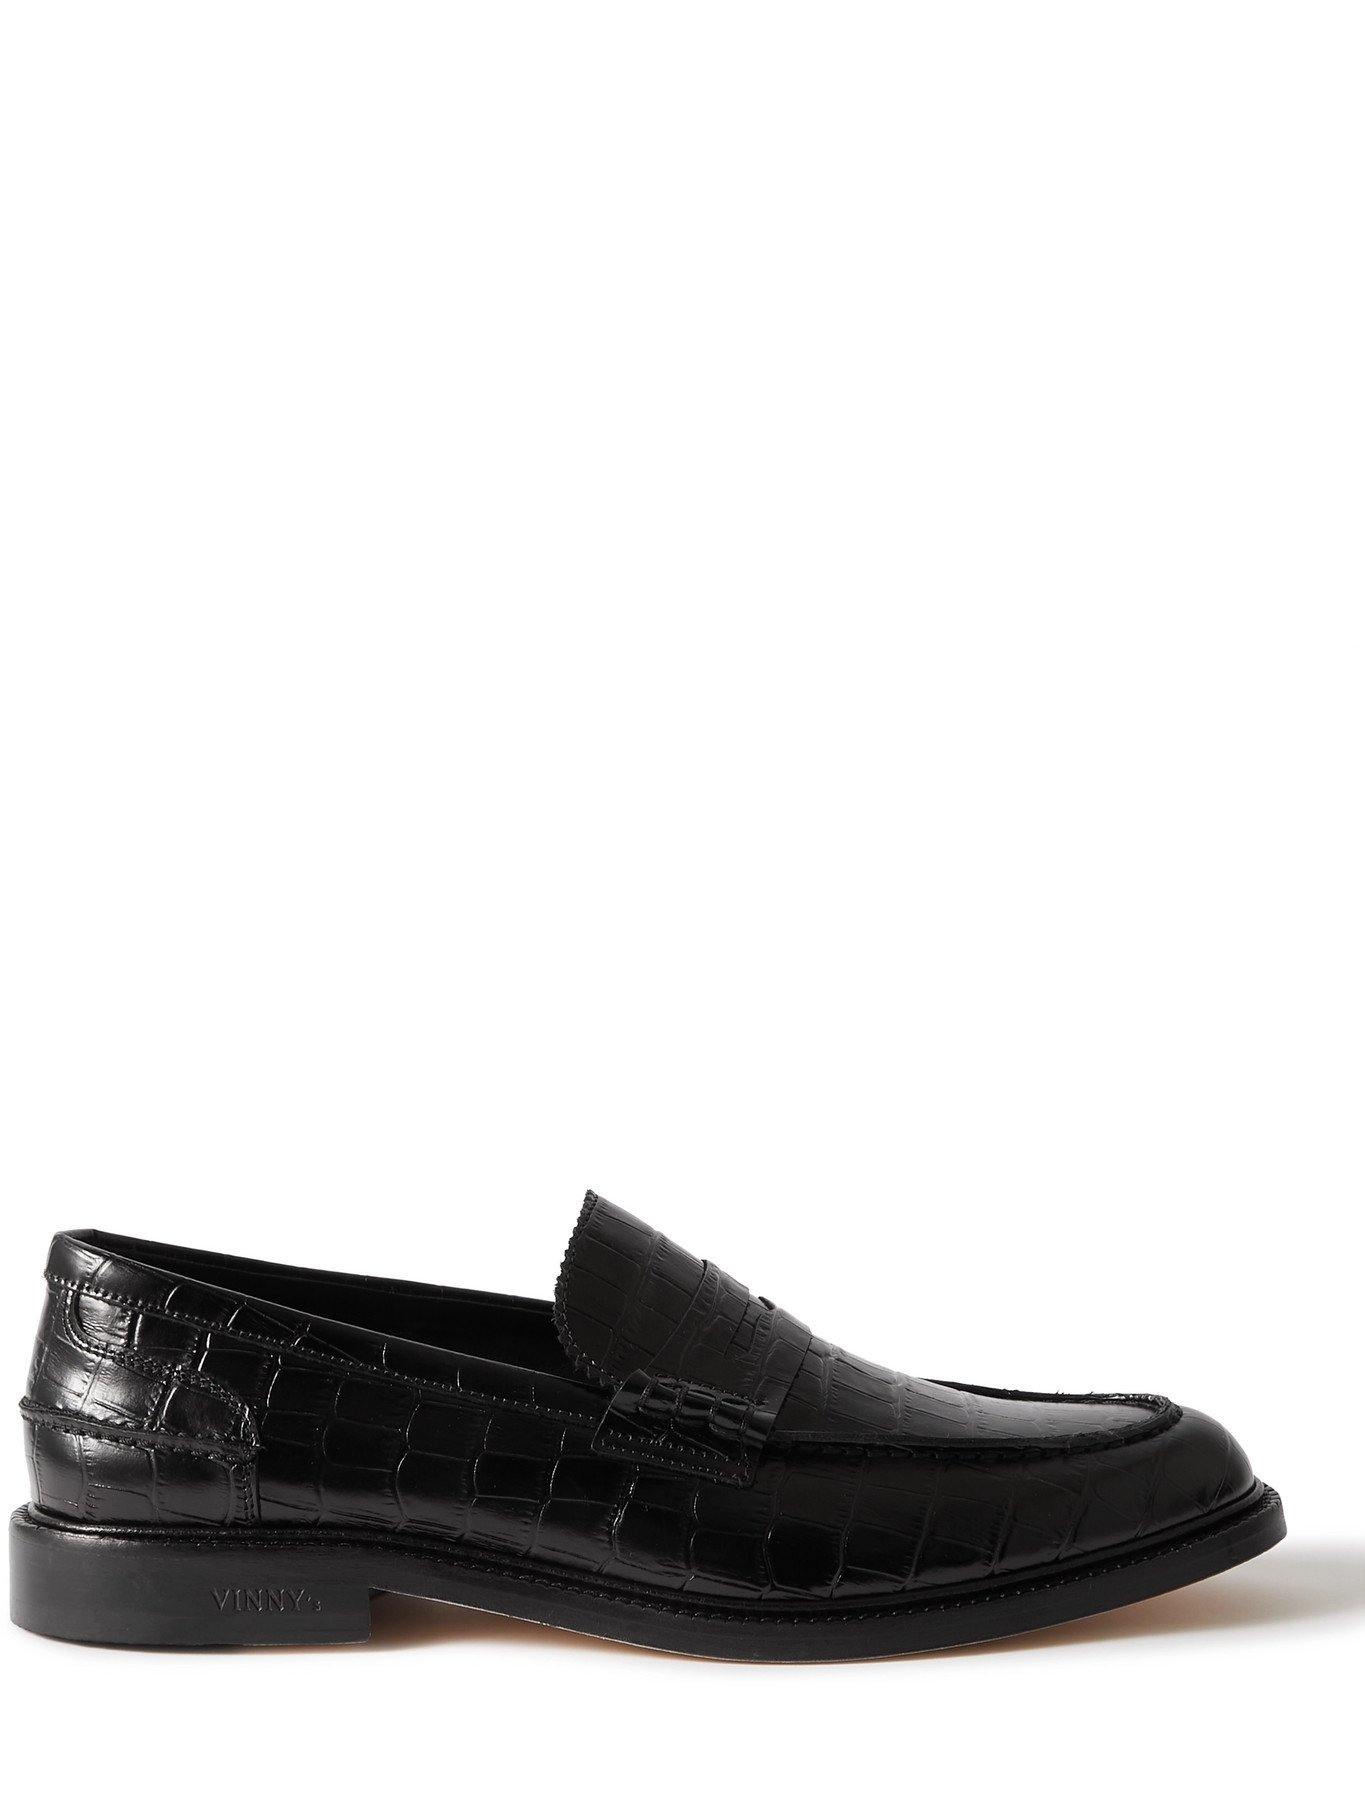 Photo: VINNY'S - Romeo Croc-Effect Leather Penny Loafers - Black - EU 40